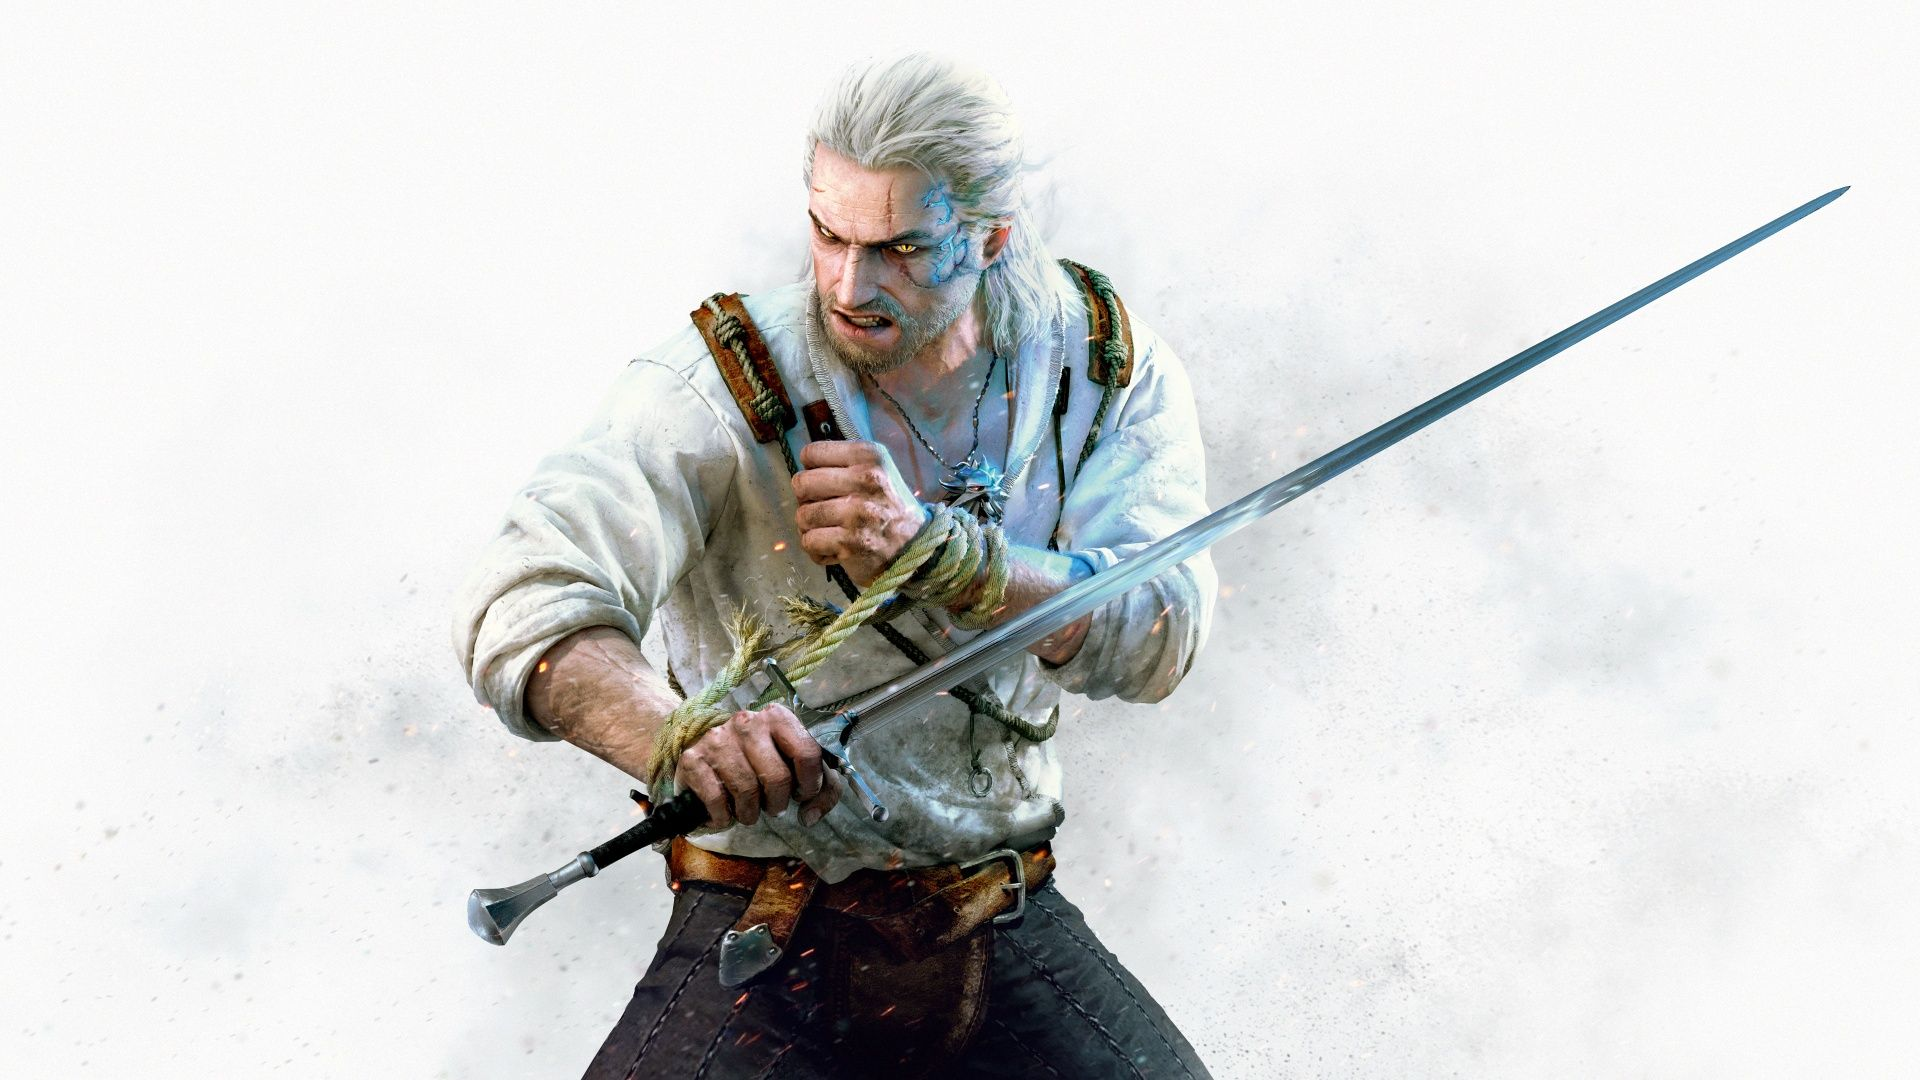 Pin By Vegaz On Addicted Gamer Hearts Of Stone The Witcher Star Wars Wallpaper Hd